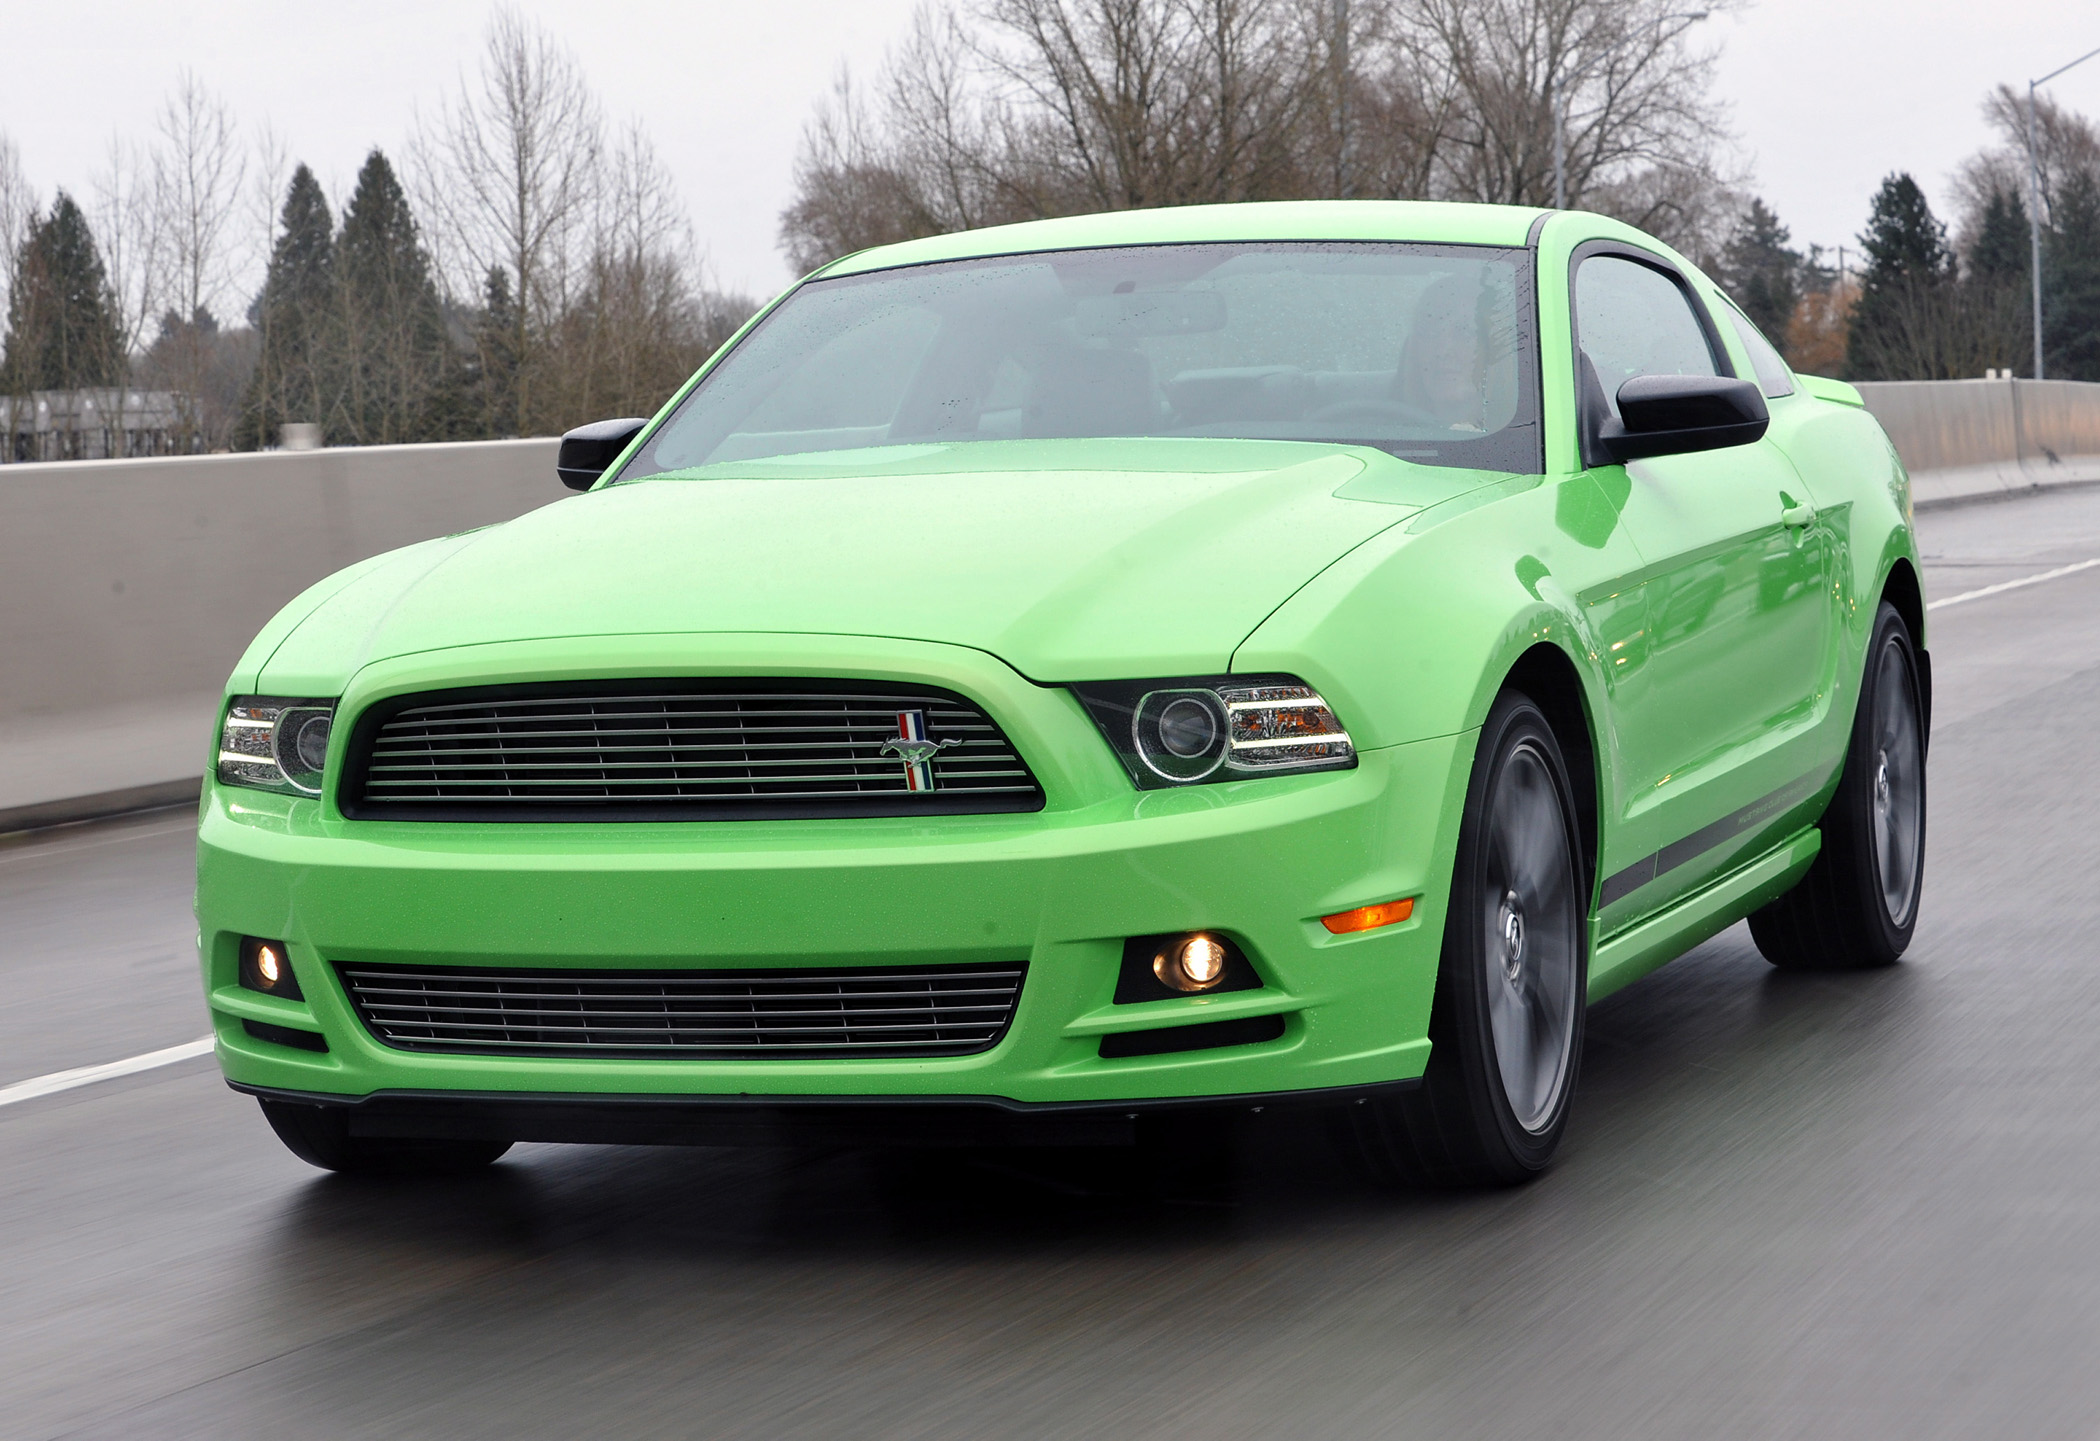 Manufacturer photo: For the 2013 model, the front end of the Mustang offers a more aggressive design with a significantly more prominent grille